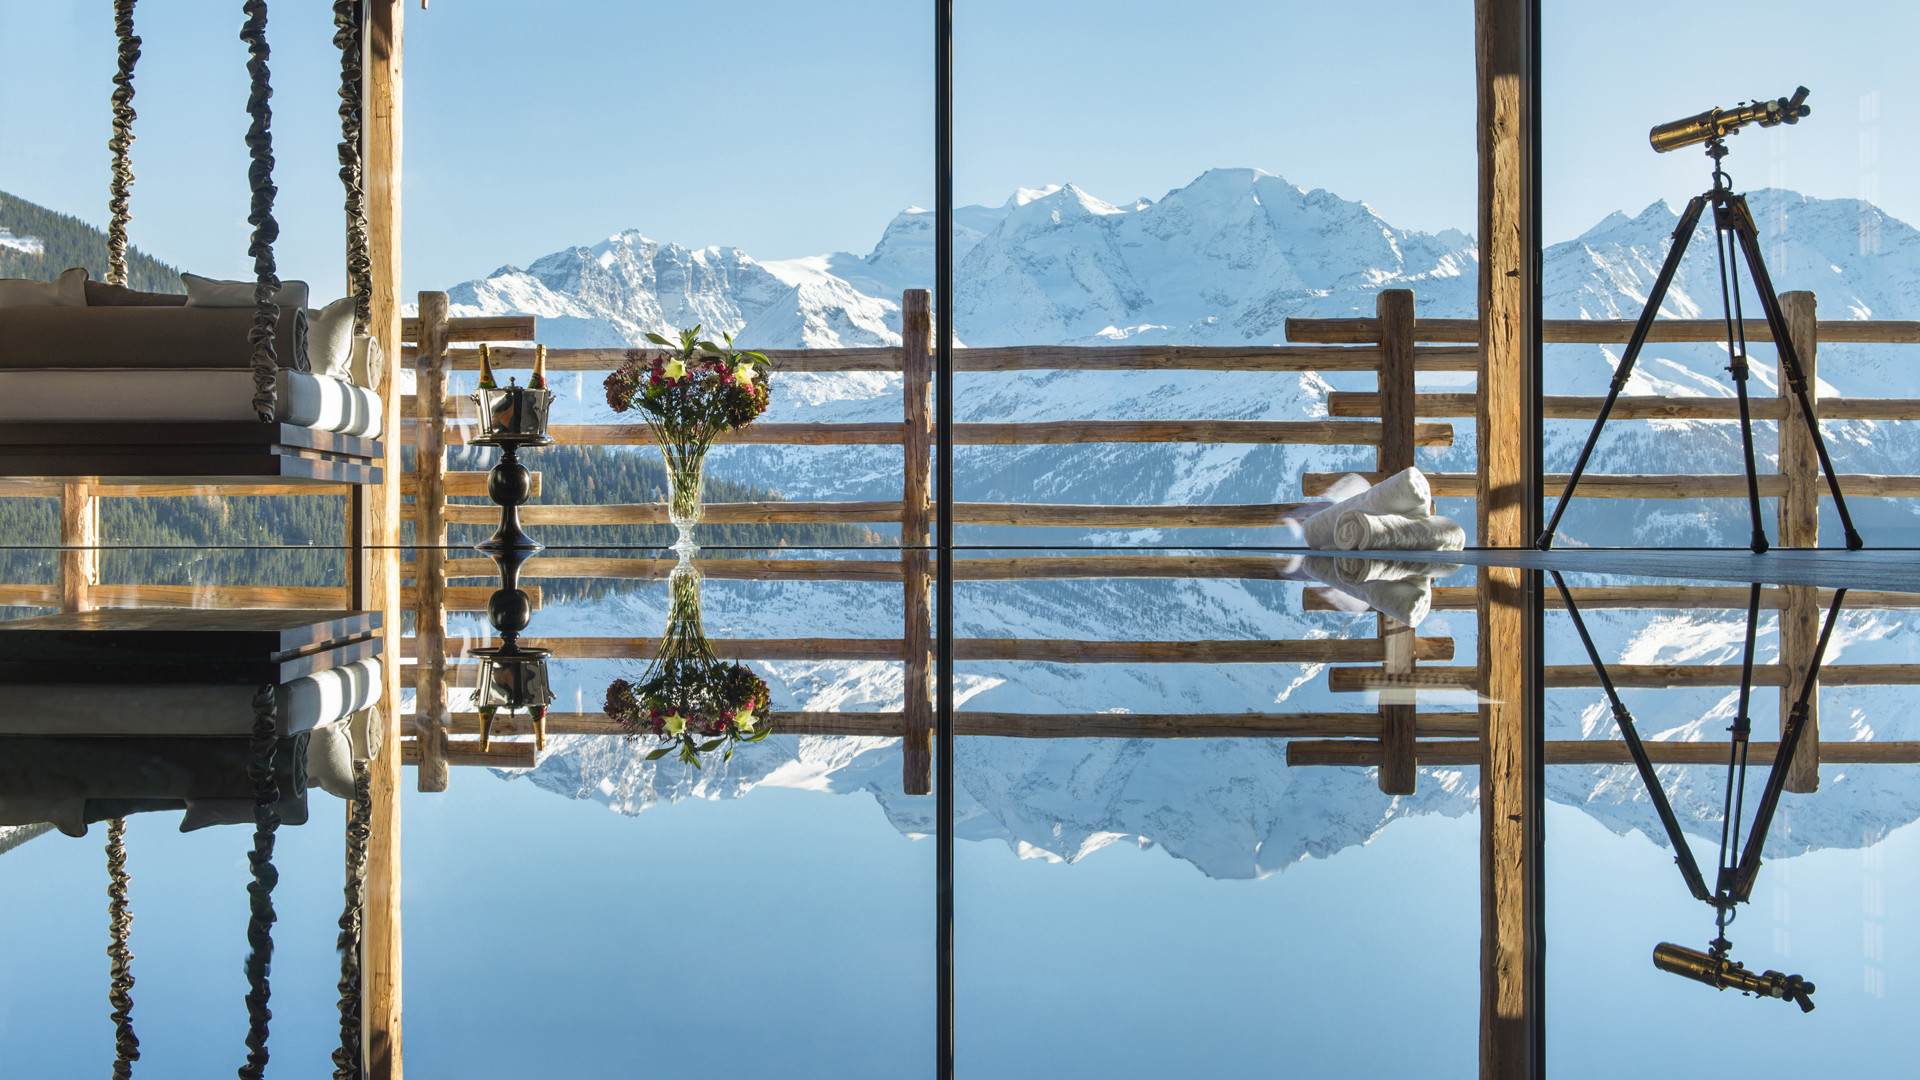 Private residence, Verbier, Switzerland